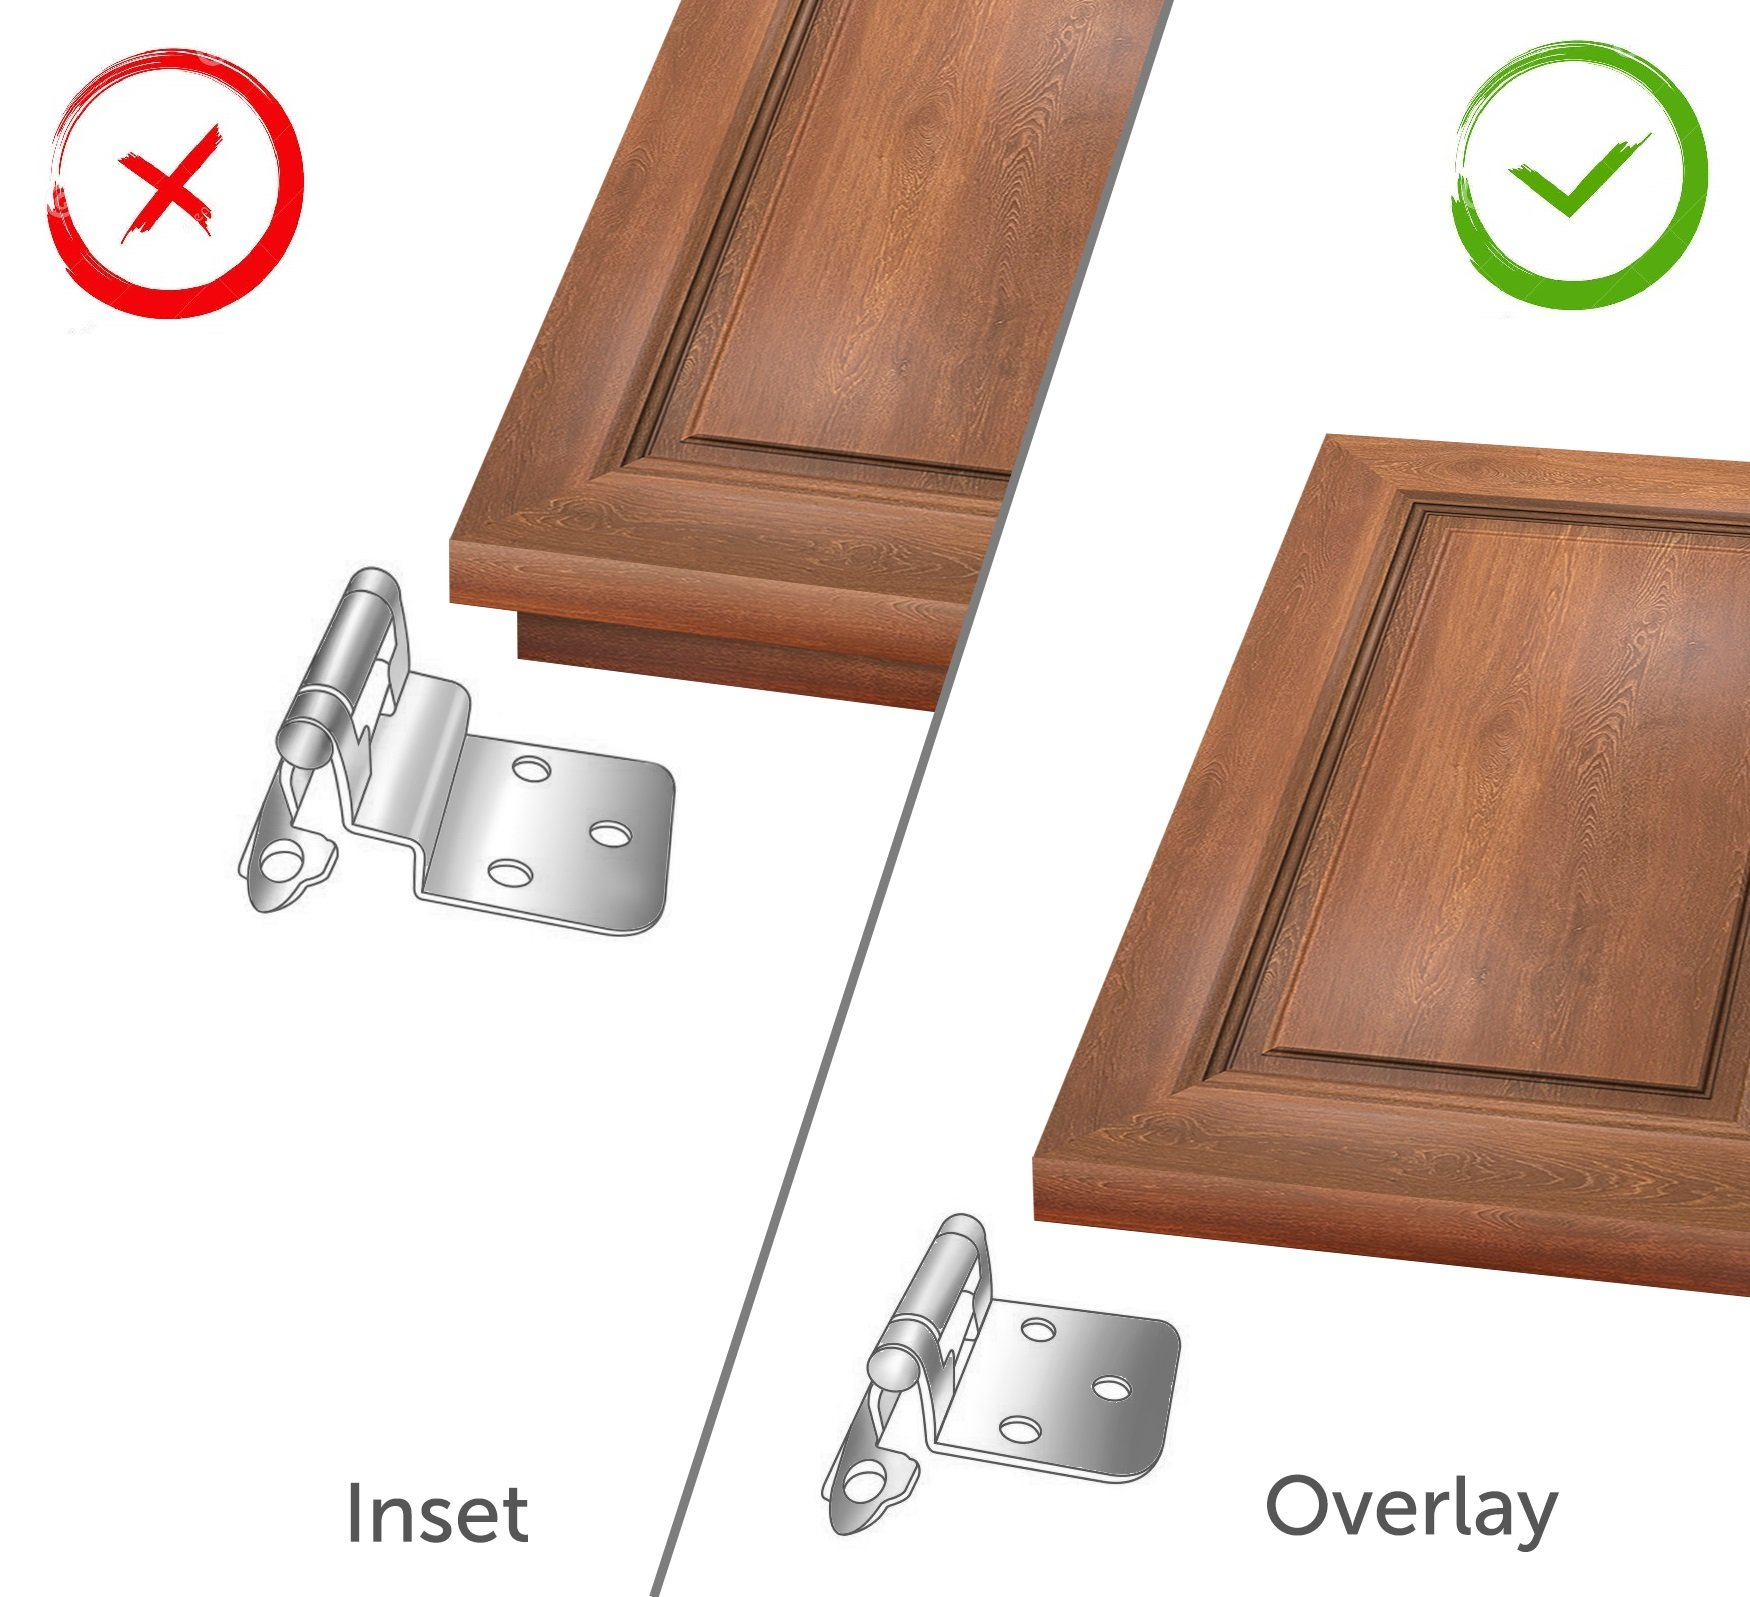 Berlin Modisch Overlay Cabinet Hinge 10 Pair (20 Units) Self-Closing Decorative, Face Mount, for Variable Overlay Kitchen Cabinet Doors Satin Nickel Finish, with Sound Dampening Door Bumpers by Berlin Modisch (Image #2)